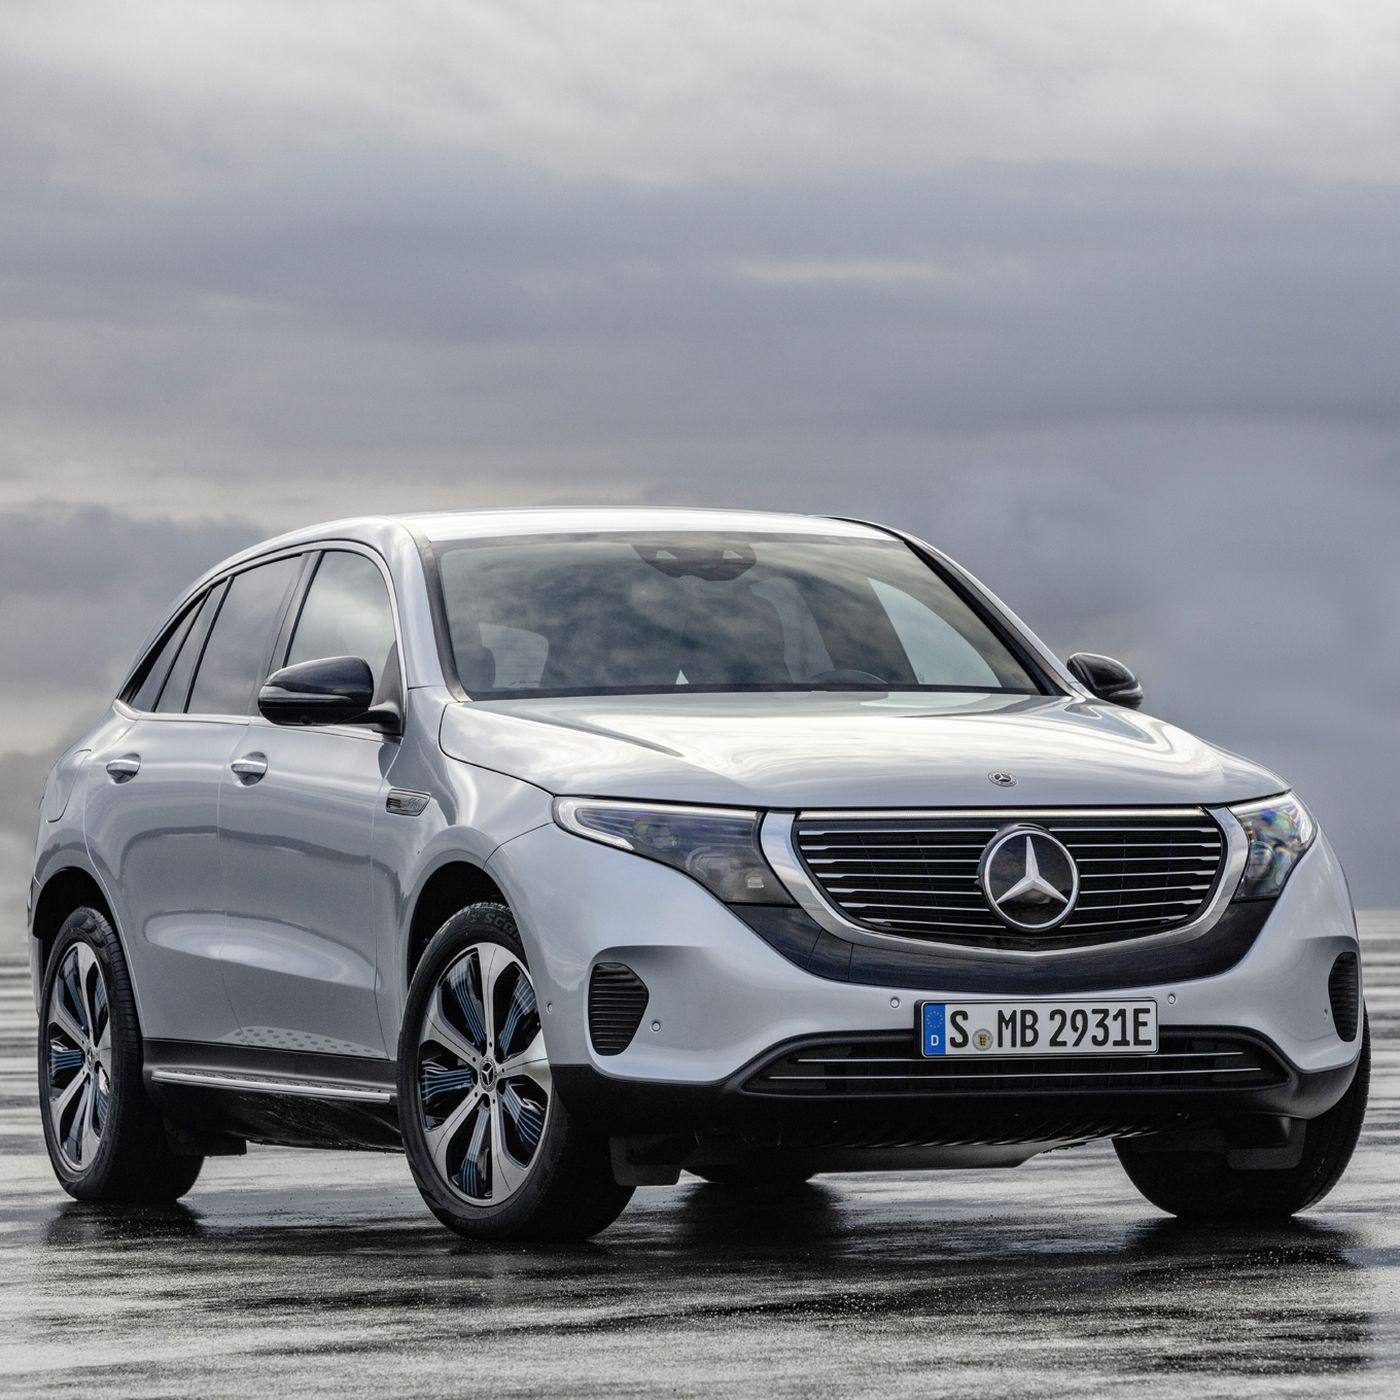 Mercedes Benz S First Serious All Electric Car Is A 402 Horsepower Suv With Over 200 Miles Of Range The Verge